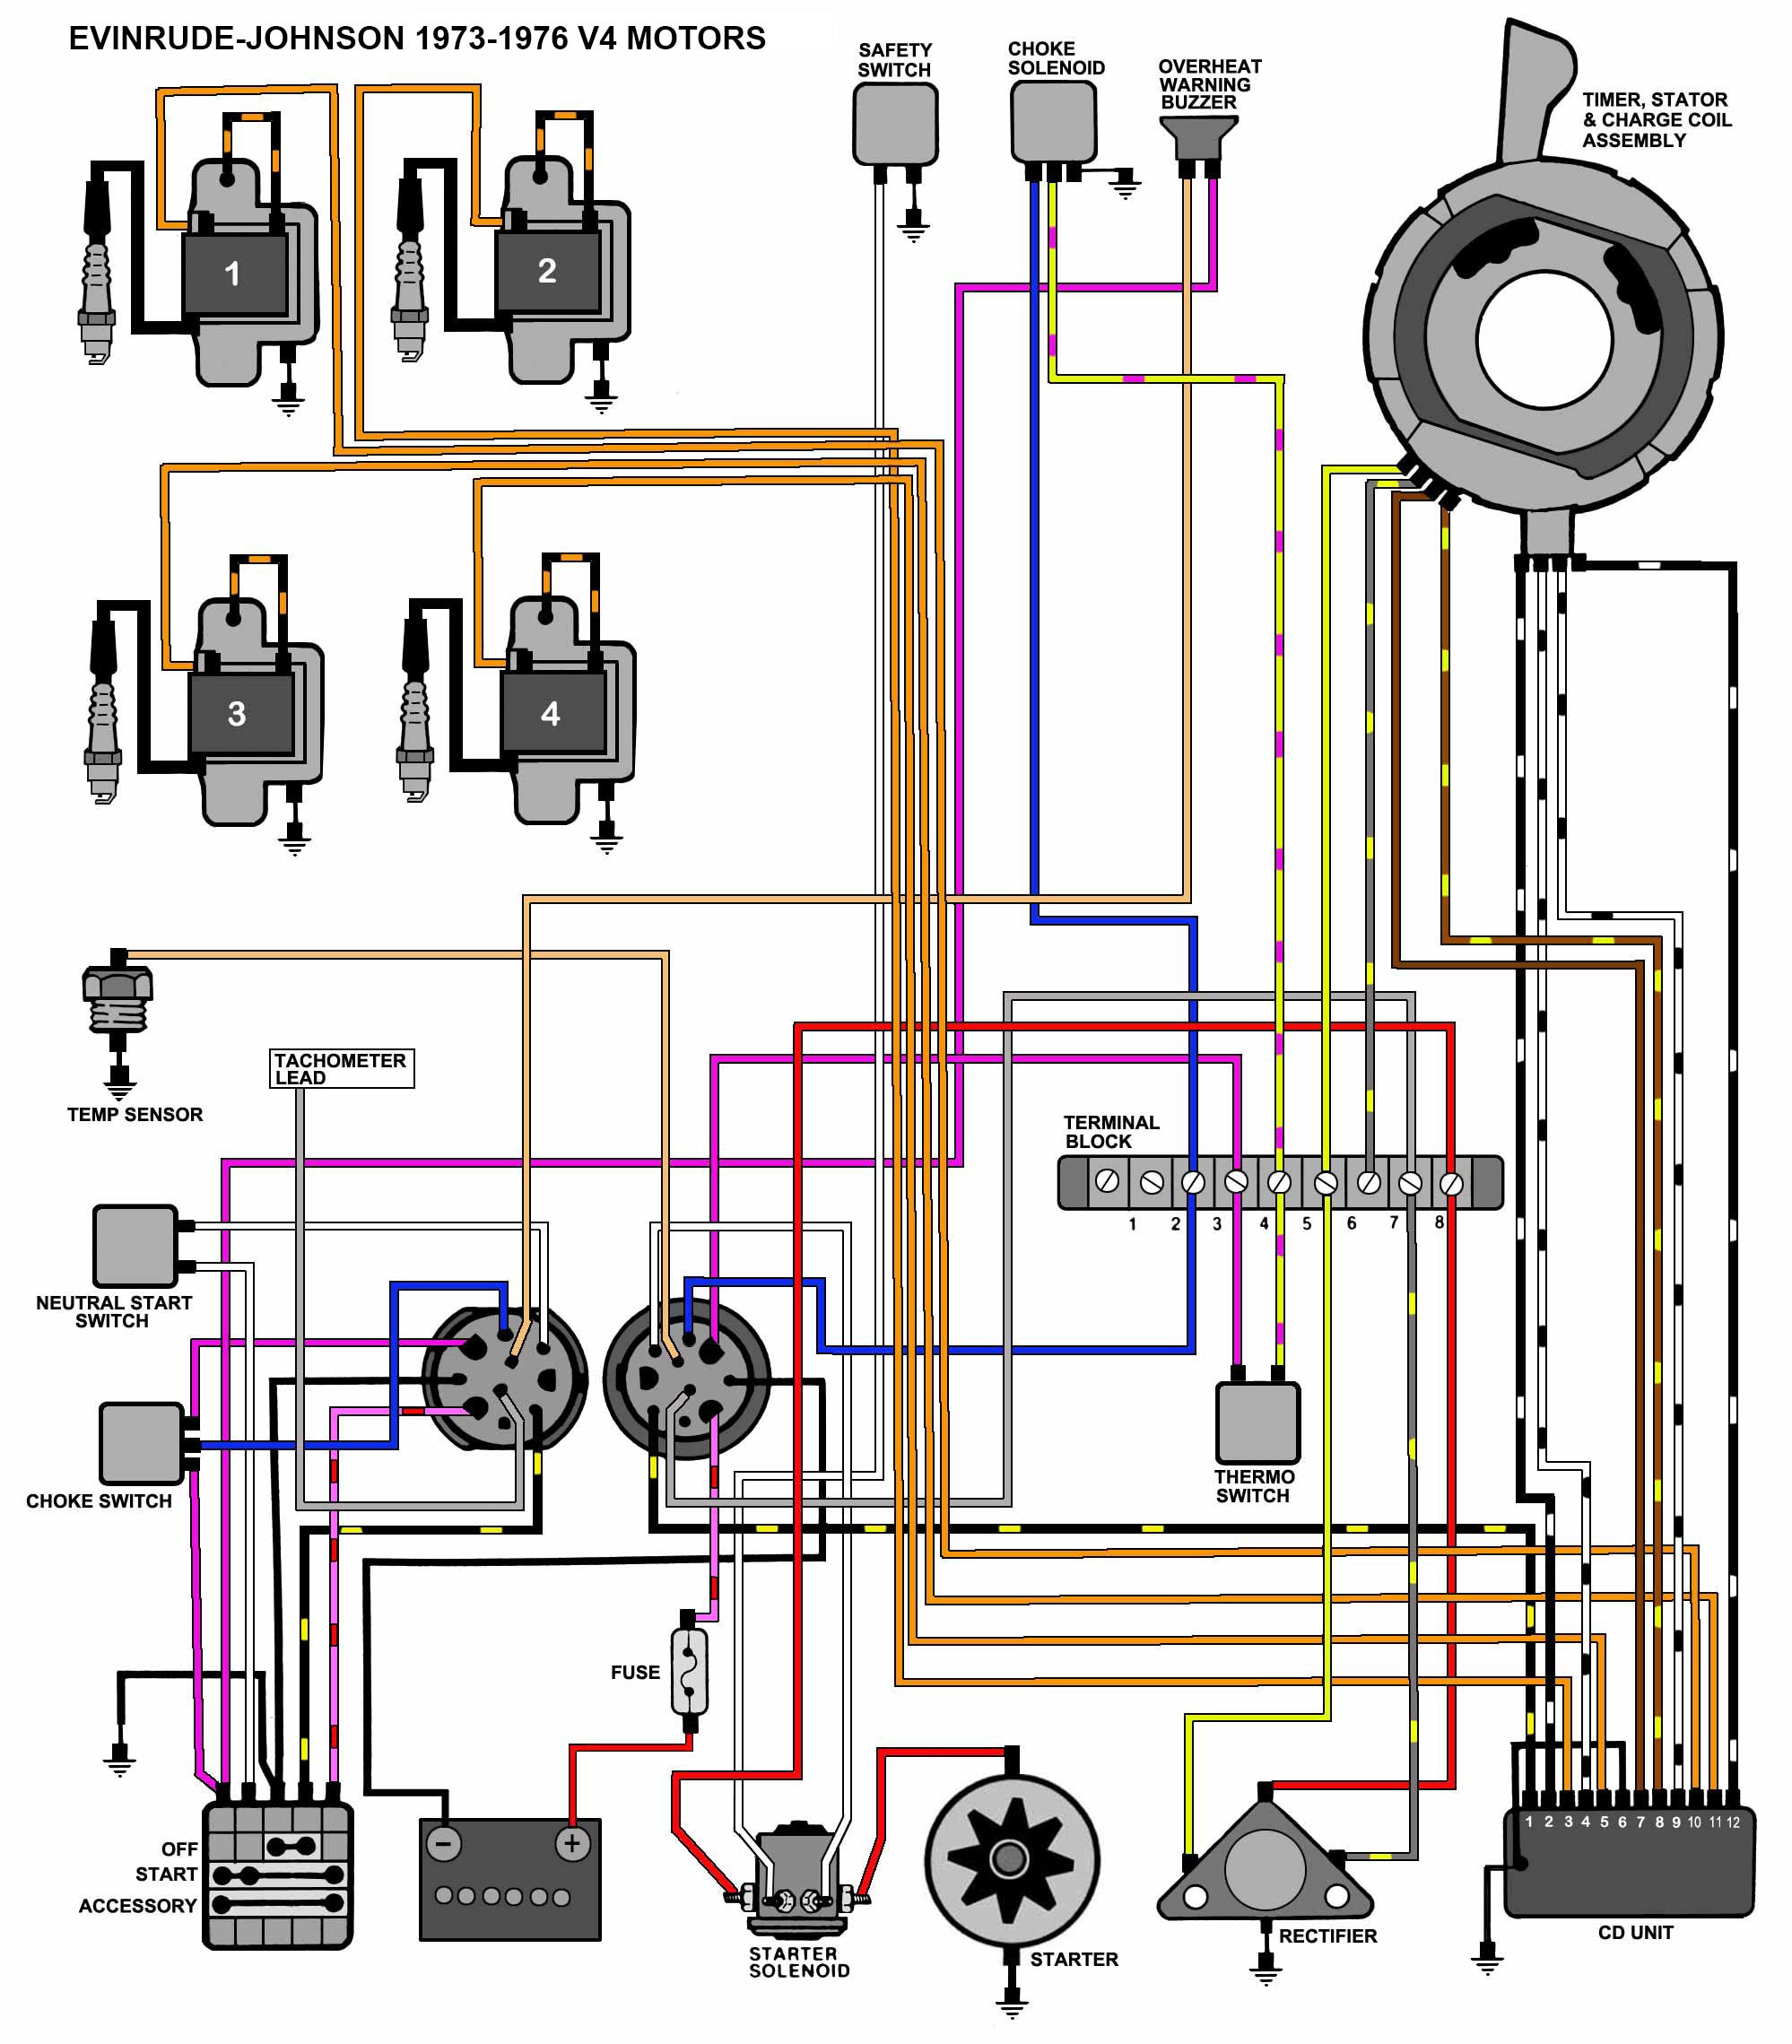 Diagram 1973 Evinrude 85 Hp Wiring Diagram Full Version Hd Quality Wiring Diagram Guidebdo Oltreilmurofestival It